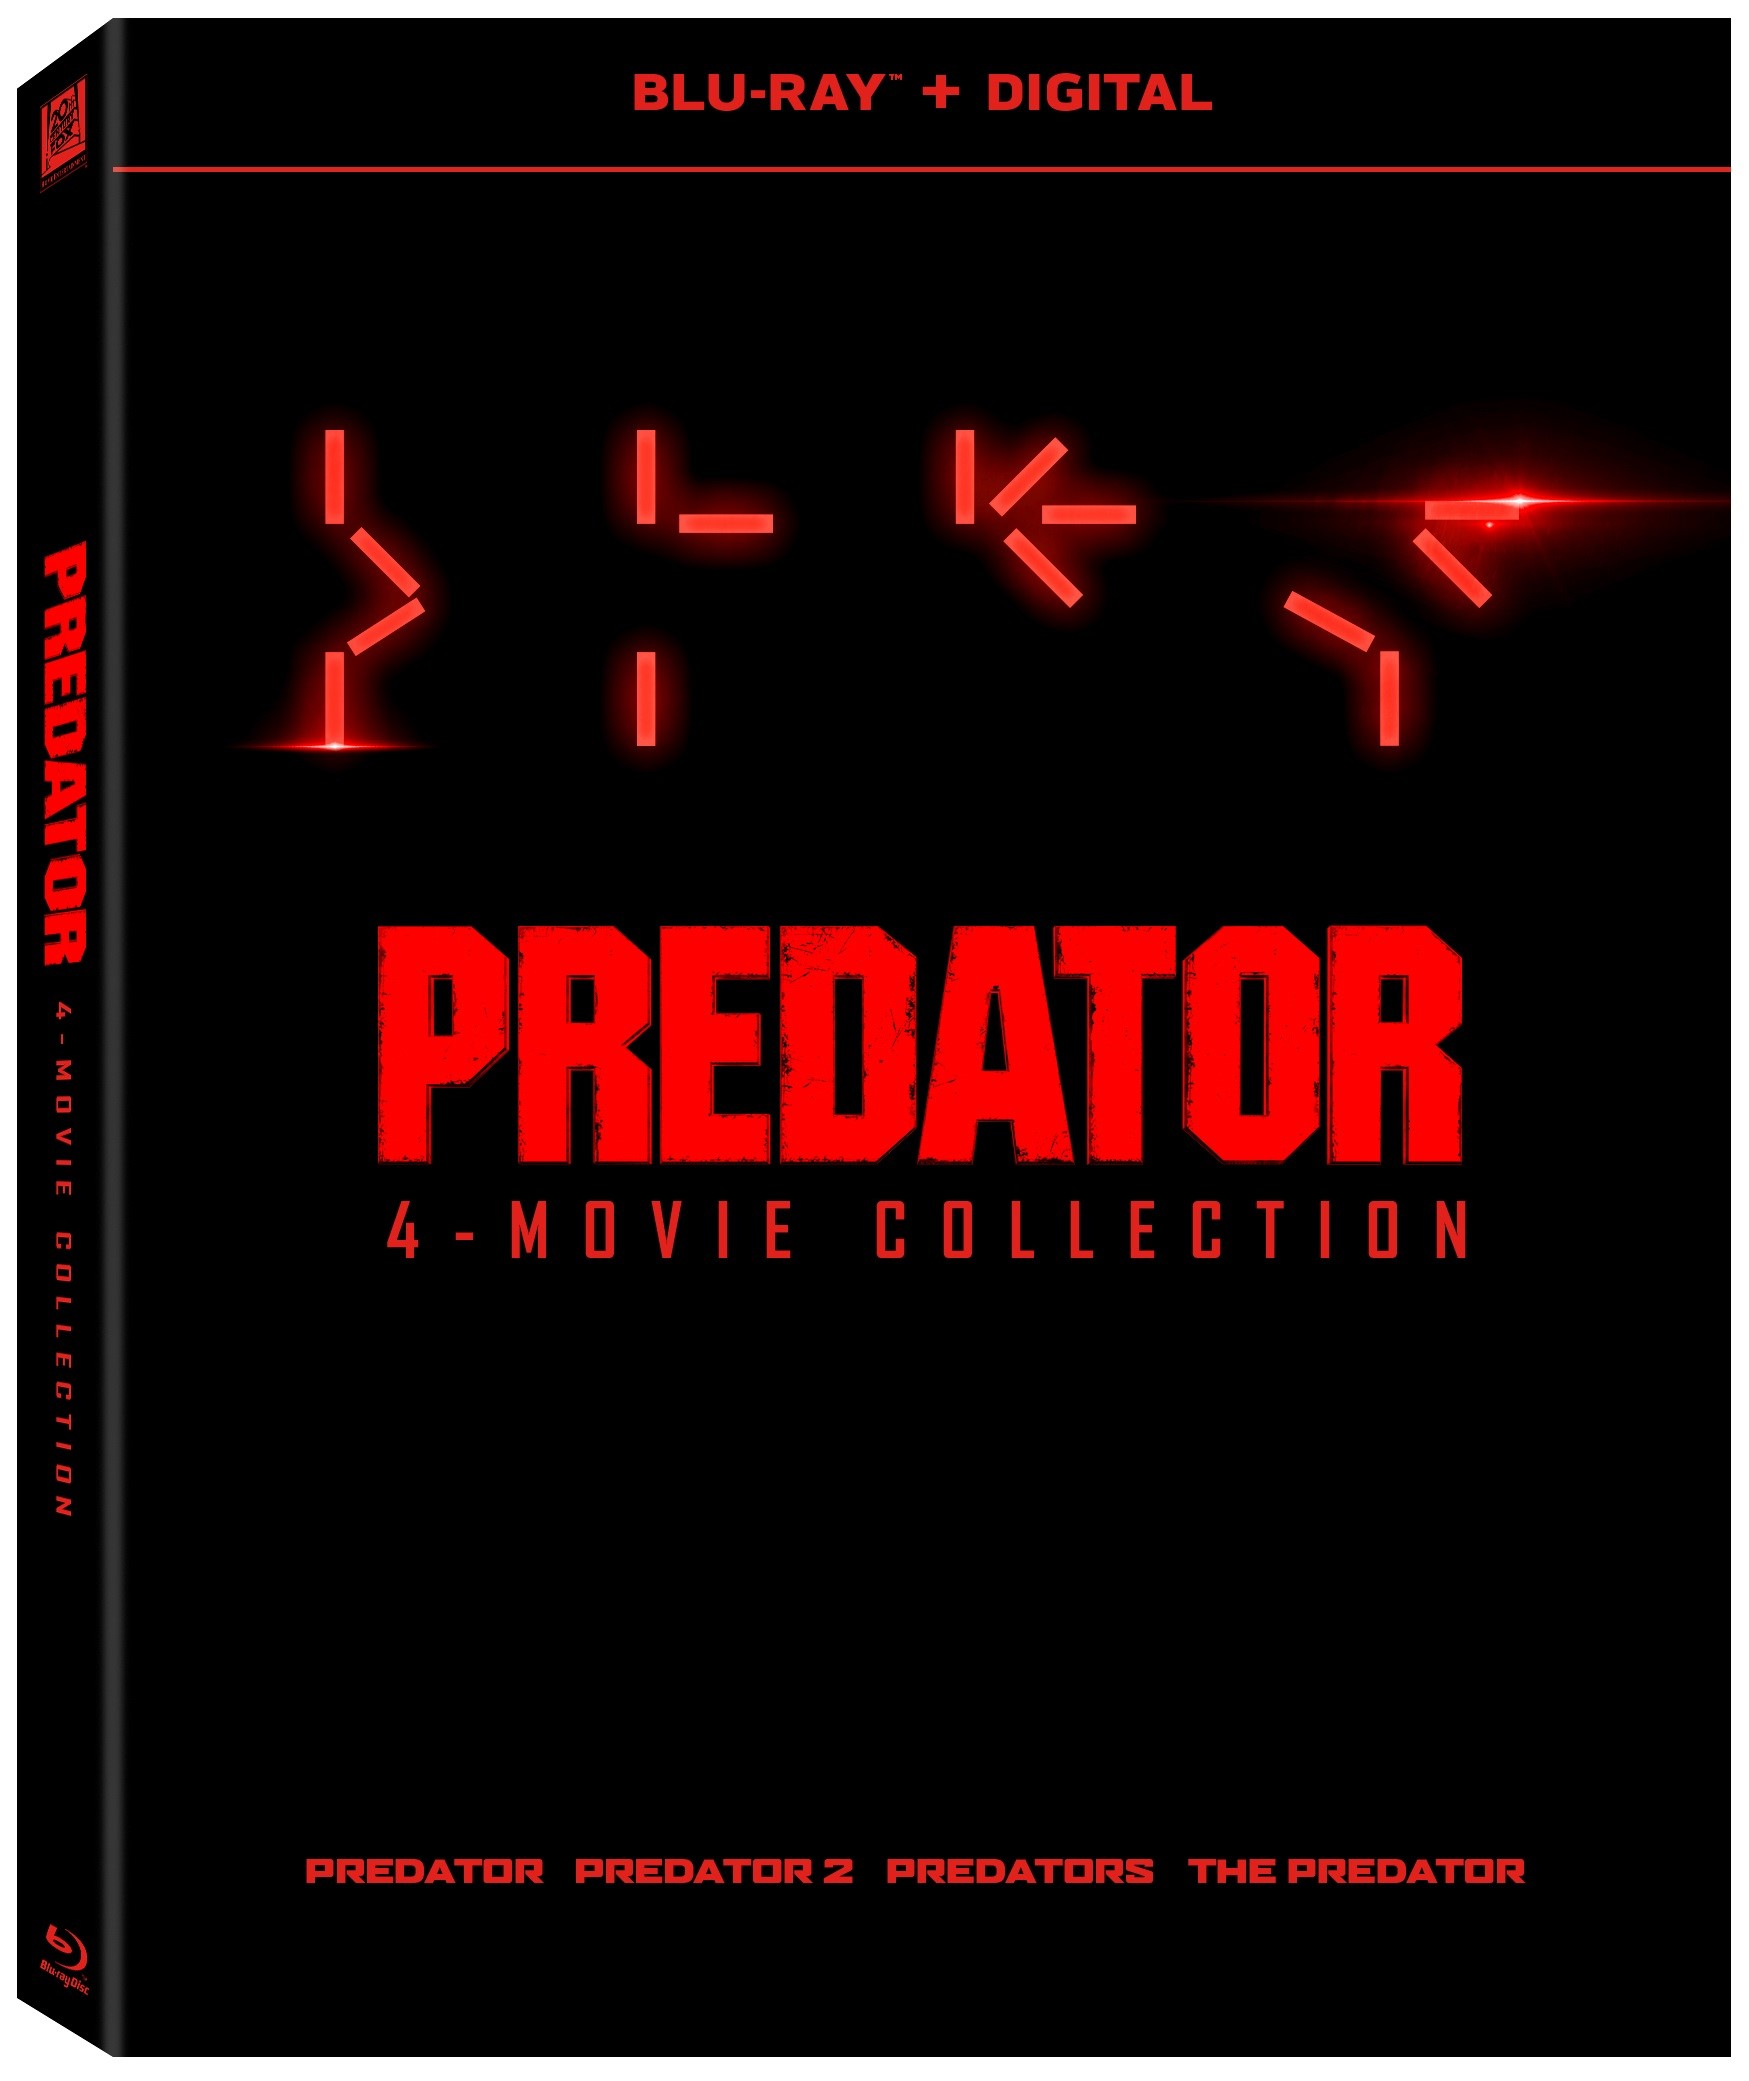 THE PREDATOR Holiday Special and 4K Ultra HD Blu-ray Arrives